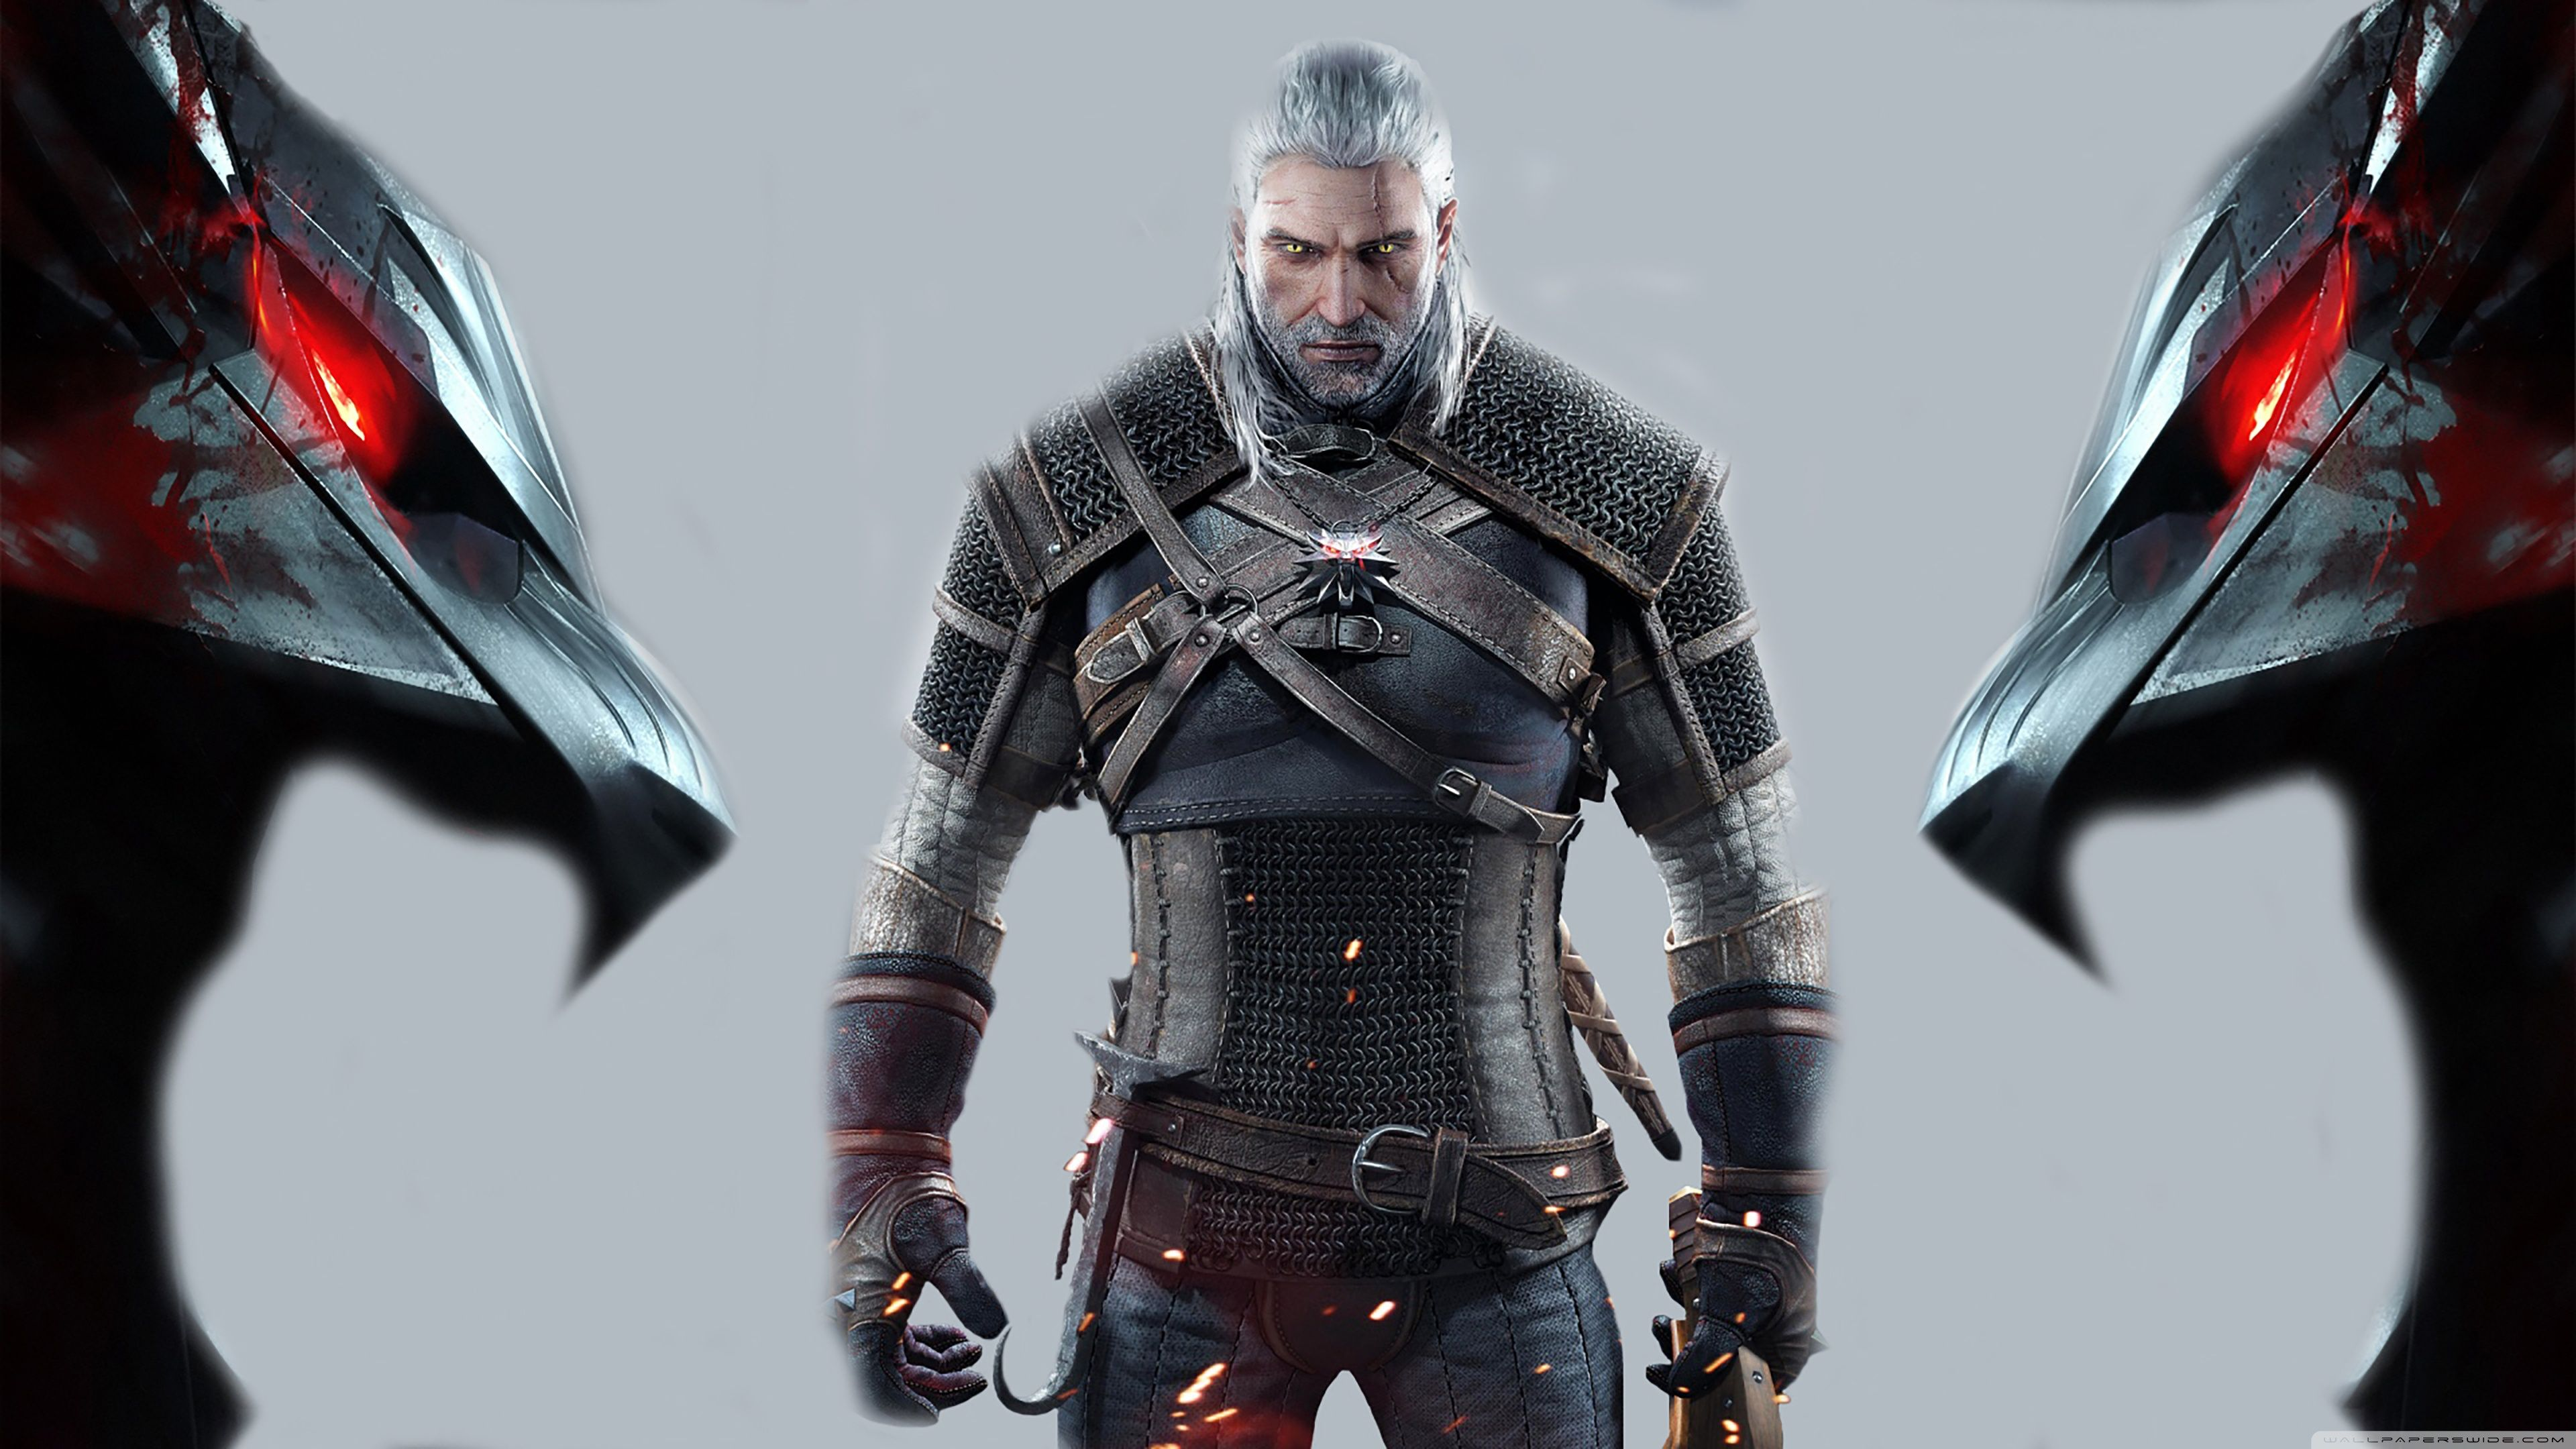 Witcher 4k wallpapers top free witcher 4k backgrounds - The witcher wallpaper 4k ...